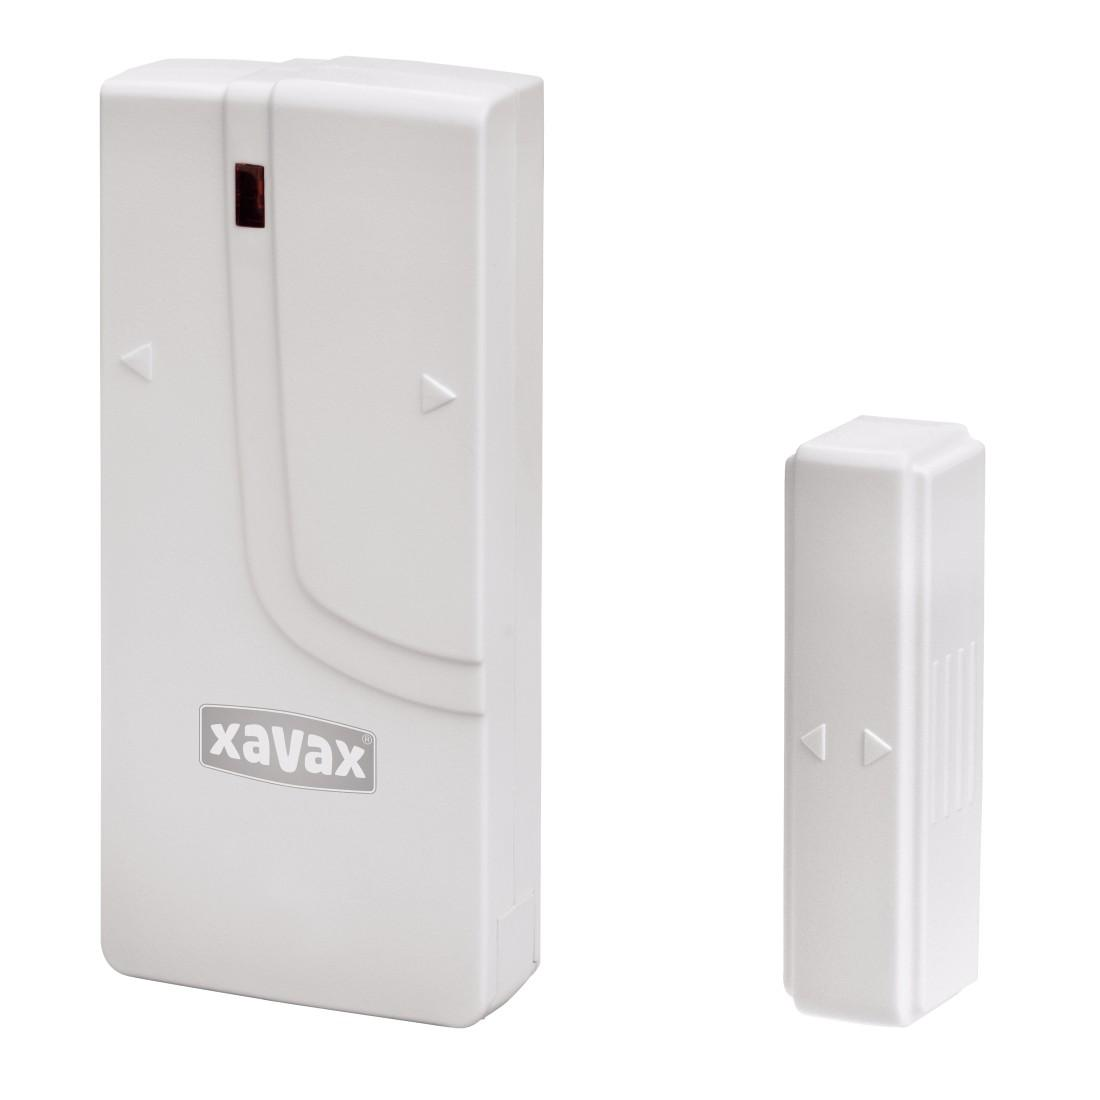 xavax fenster t r alarm sensor feelsafe alarmanlagen kameras globus baumarkt online shop. Black Bedroom Furniture Sets. Home Design Ideas